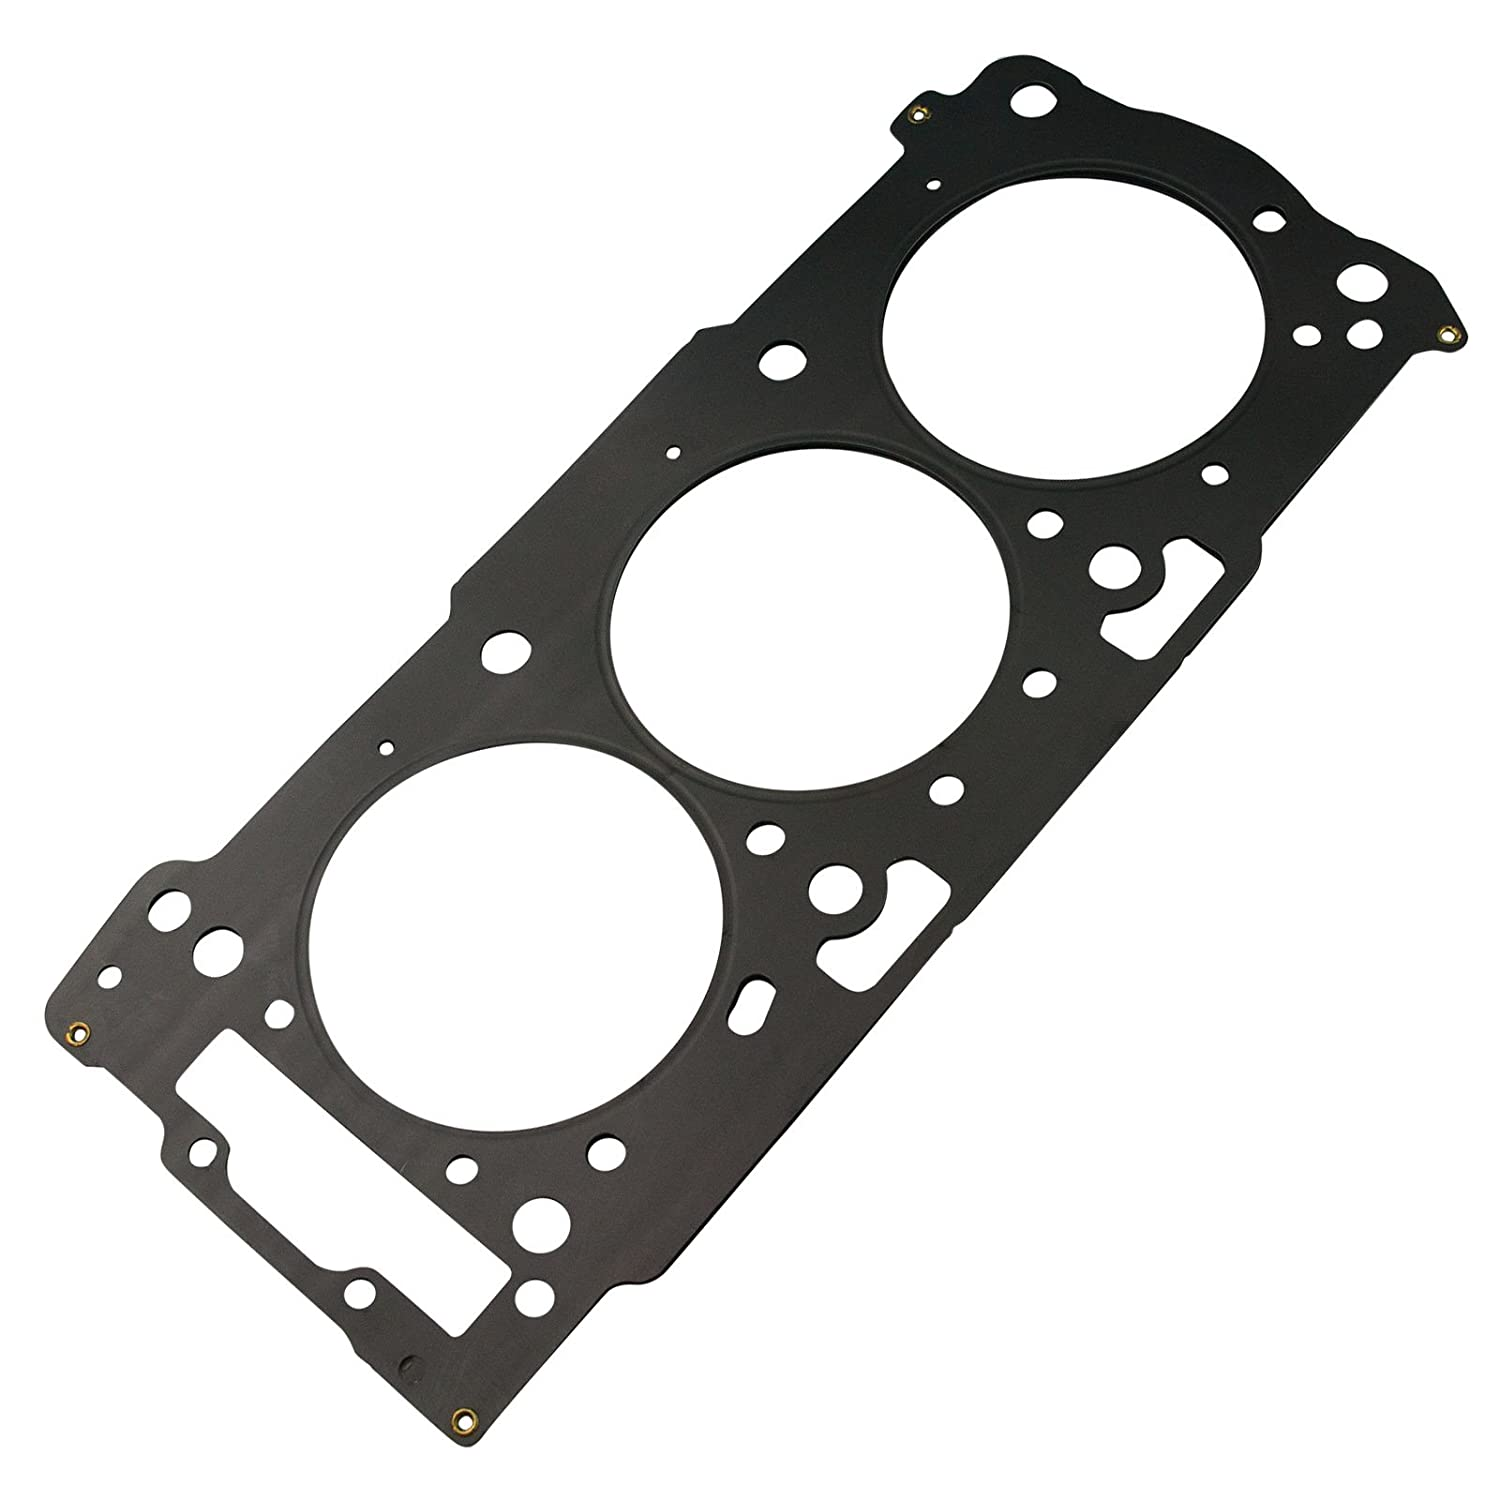 4-Tec Head Gasket /& Head Bolt Set Fits ALL 130 155 215 255 260 HP Models /& Years Compatible With Sea-Doo